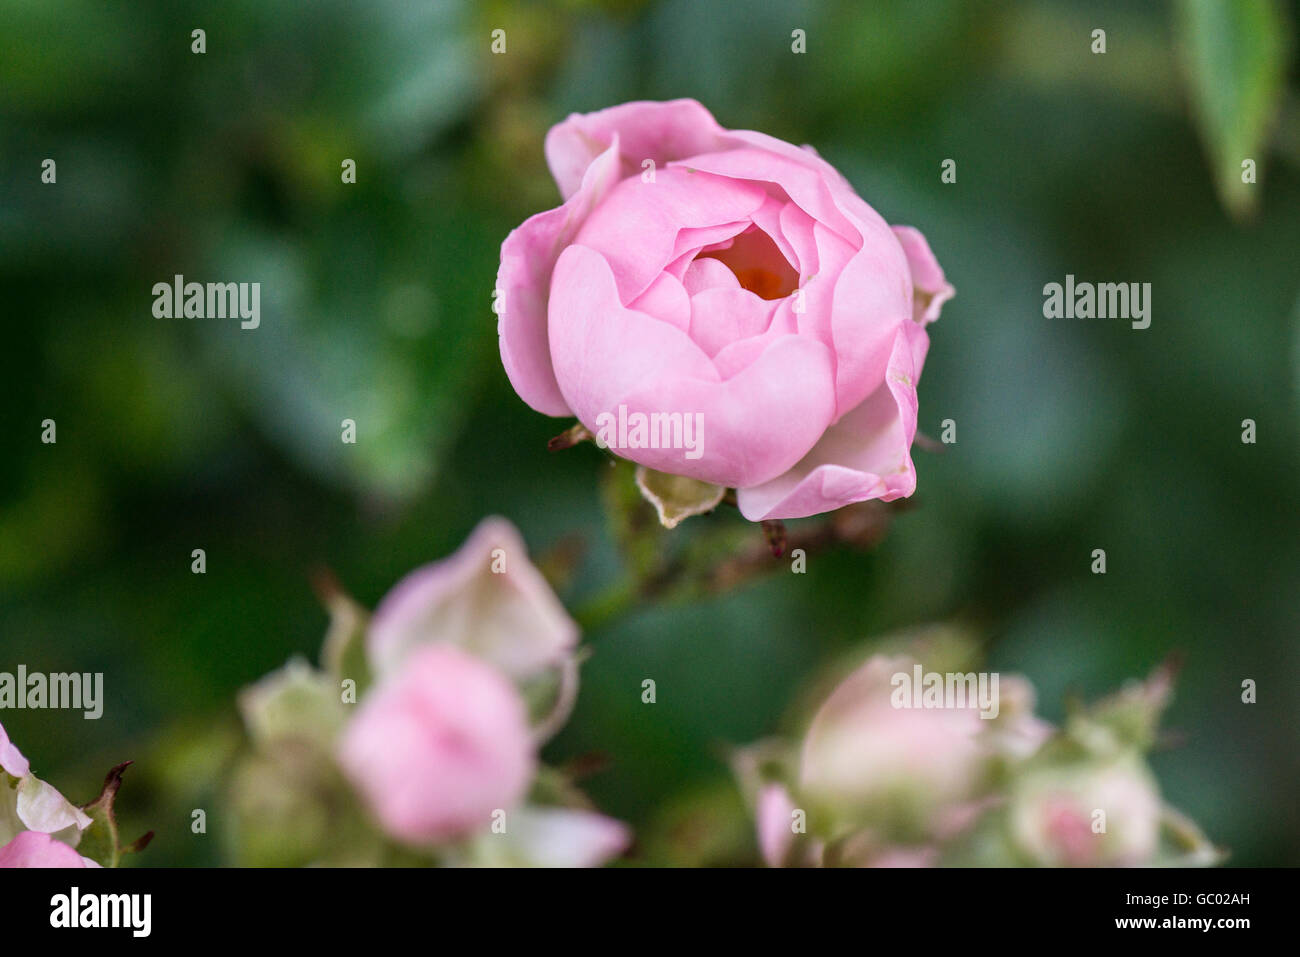 A close up of a pink flower of a fairy shrub rose - Stock Image